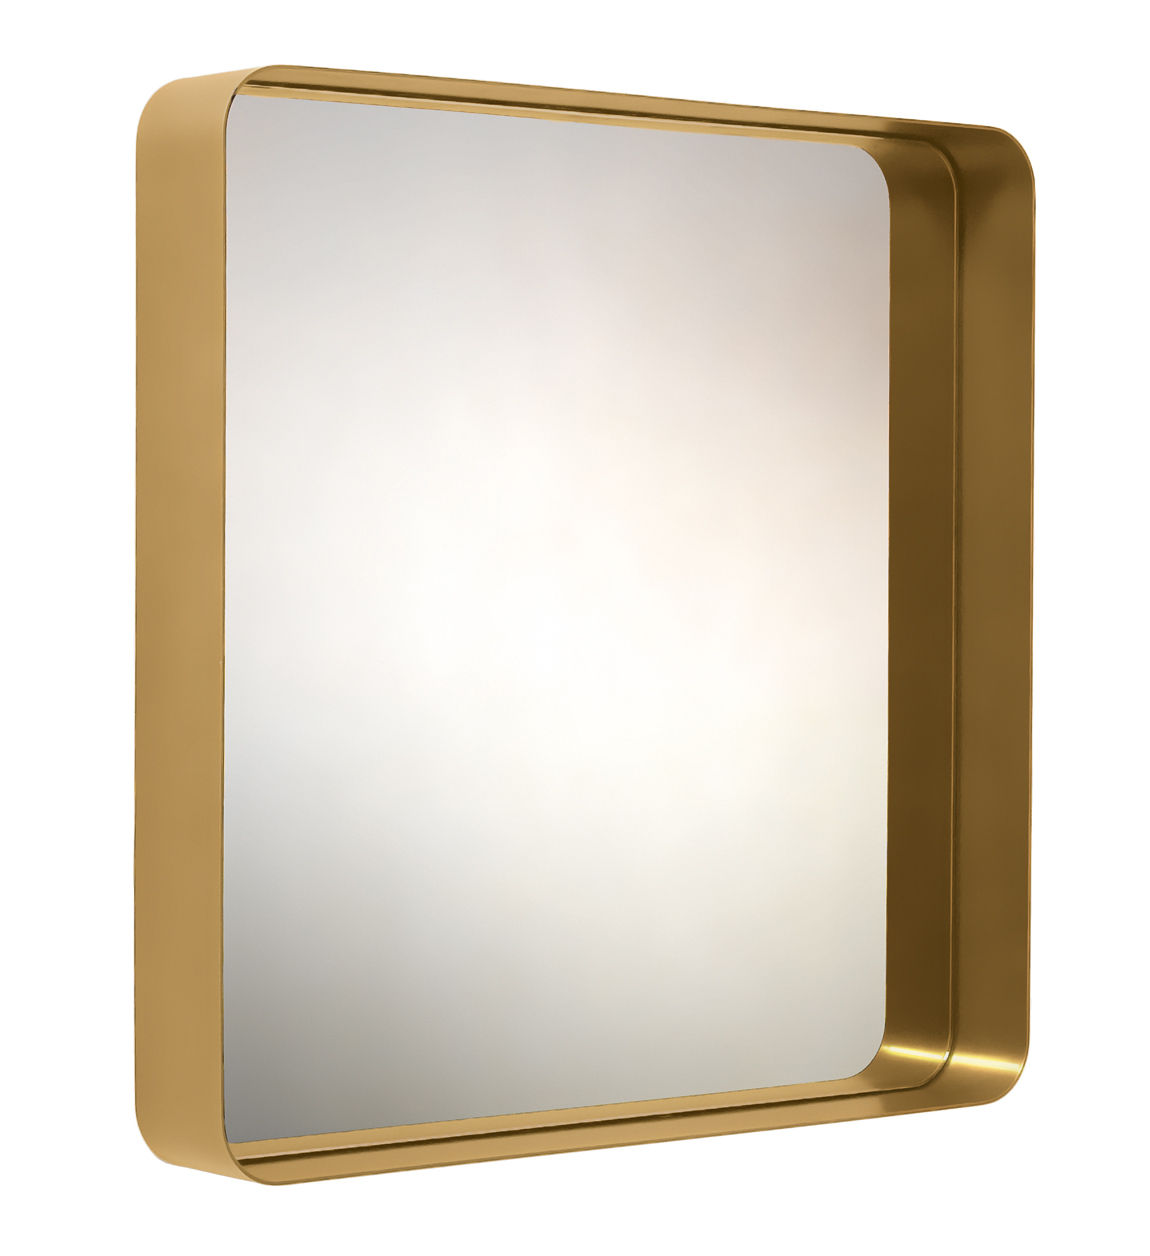 cypris wall mirror 70 x 70 cm gold silver glass by